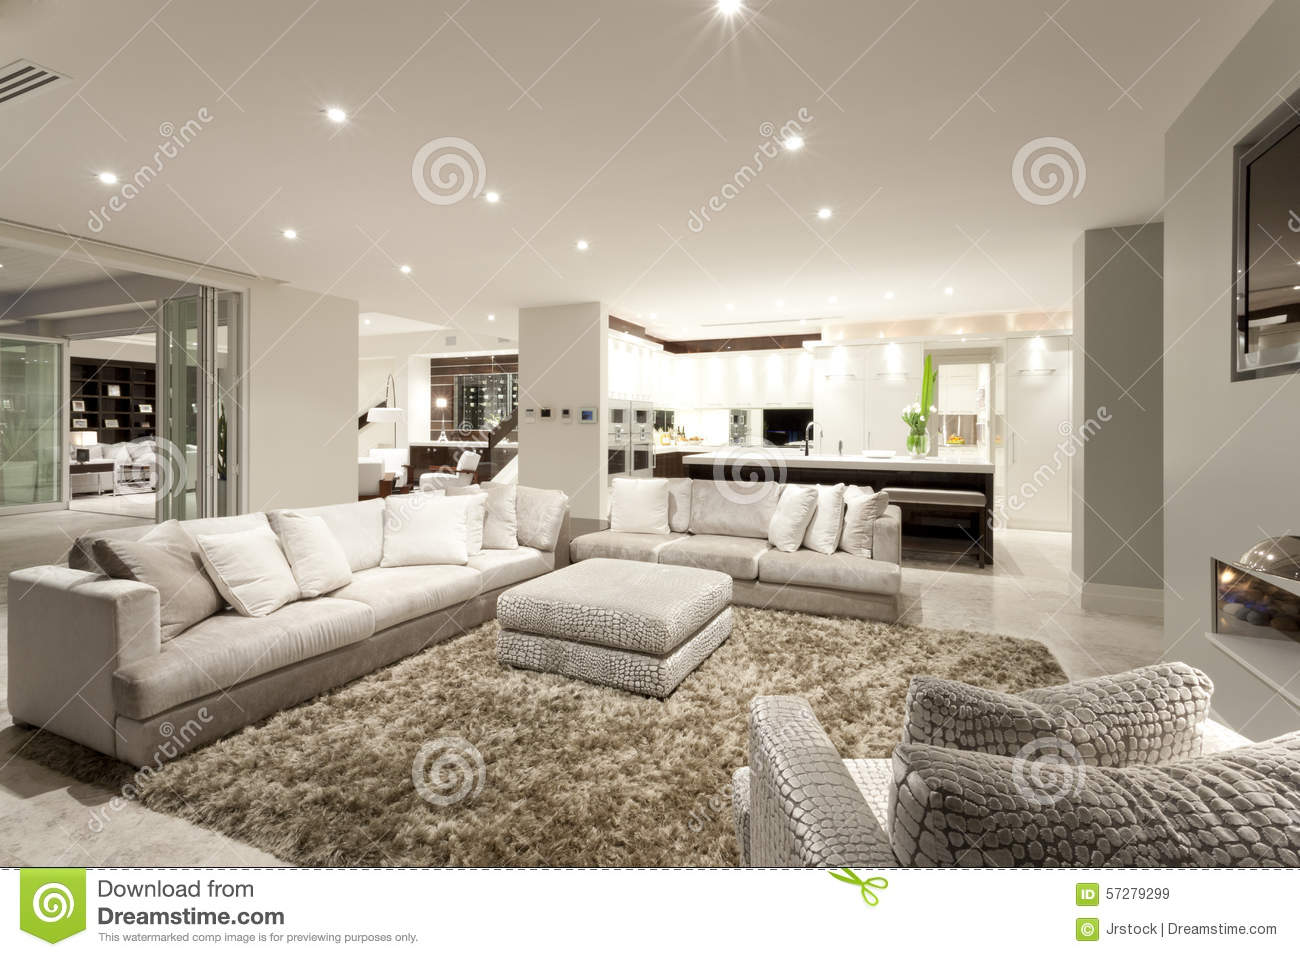 Cozy Living Room With Spacious Sofas Stock Image Image